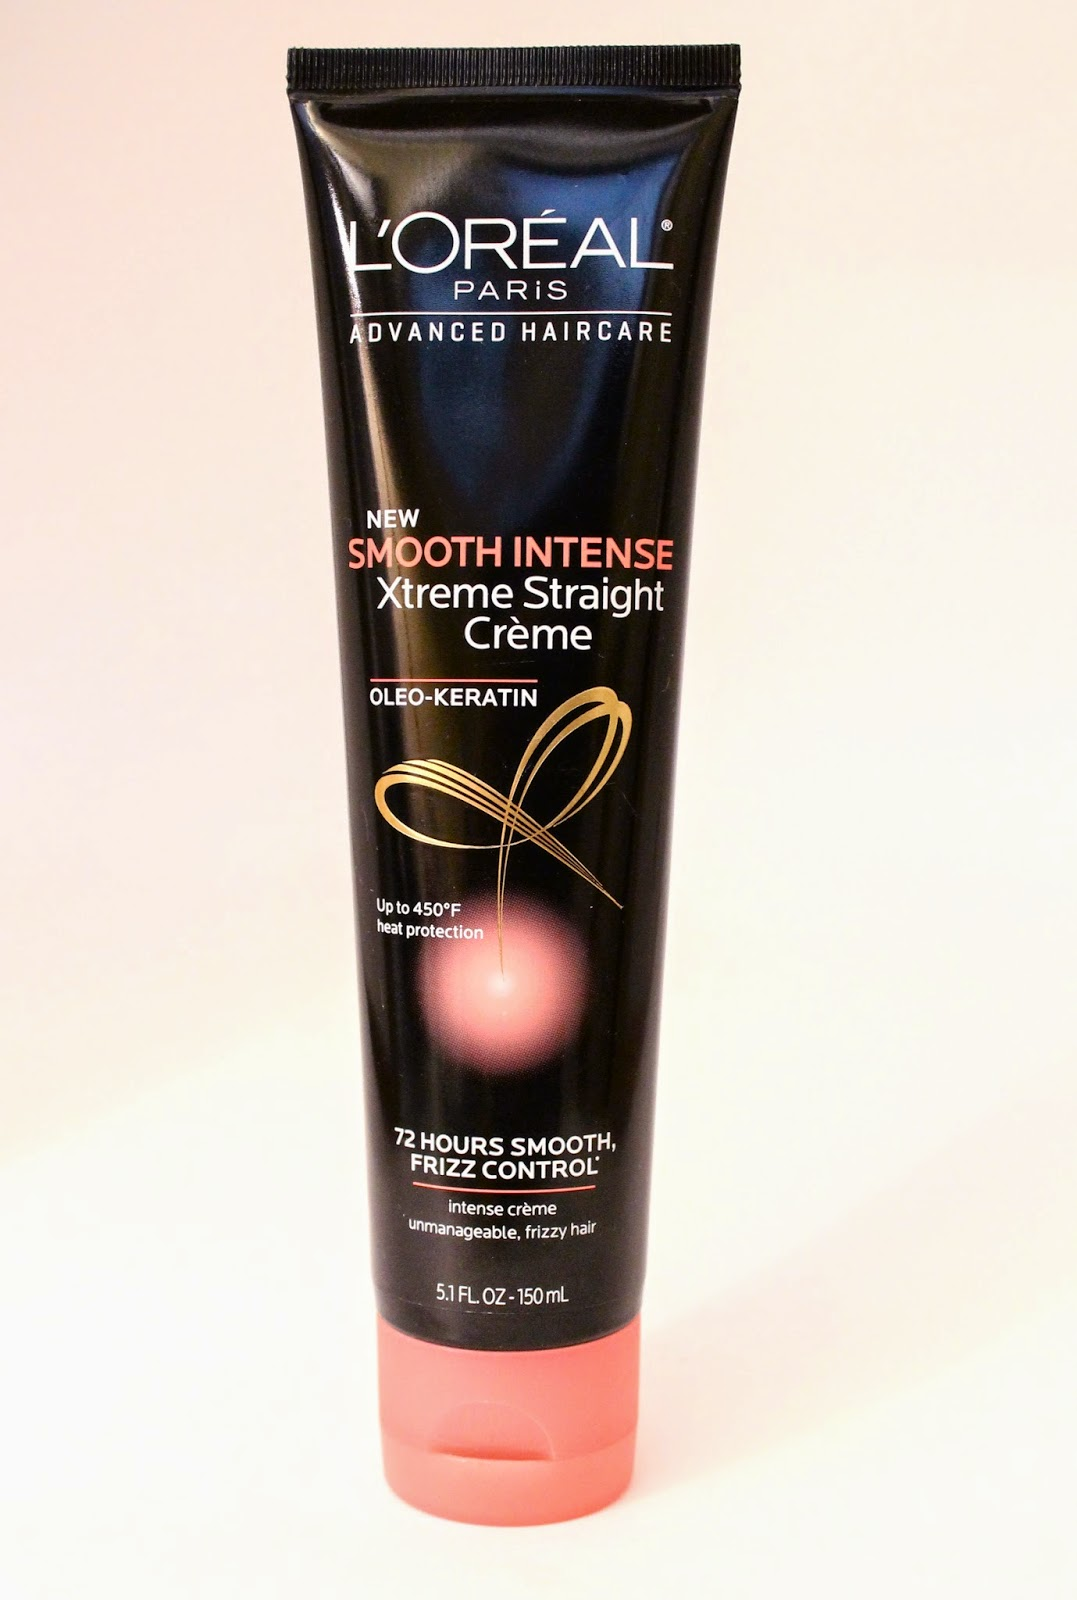 L'Oreal Smooth Intense Xtreme Straight Creme